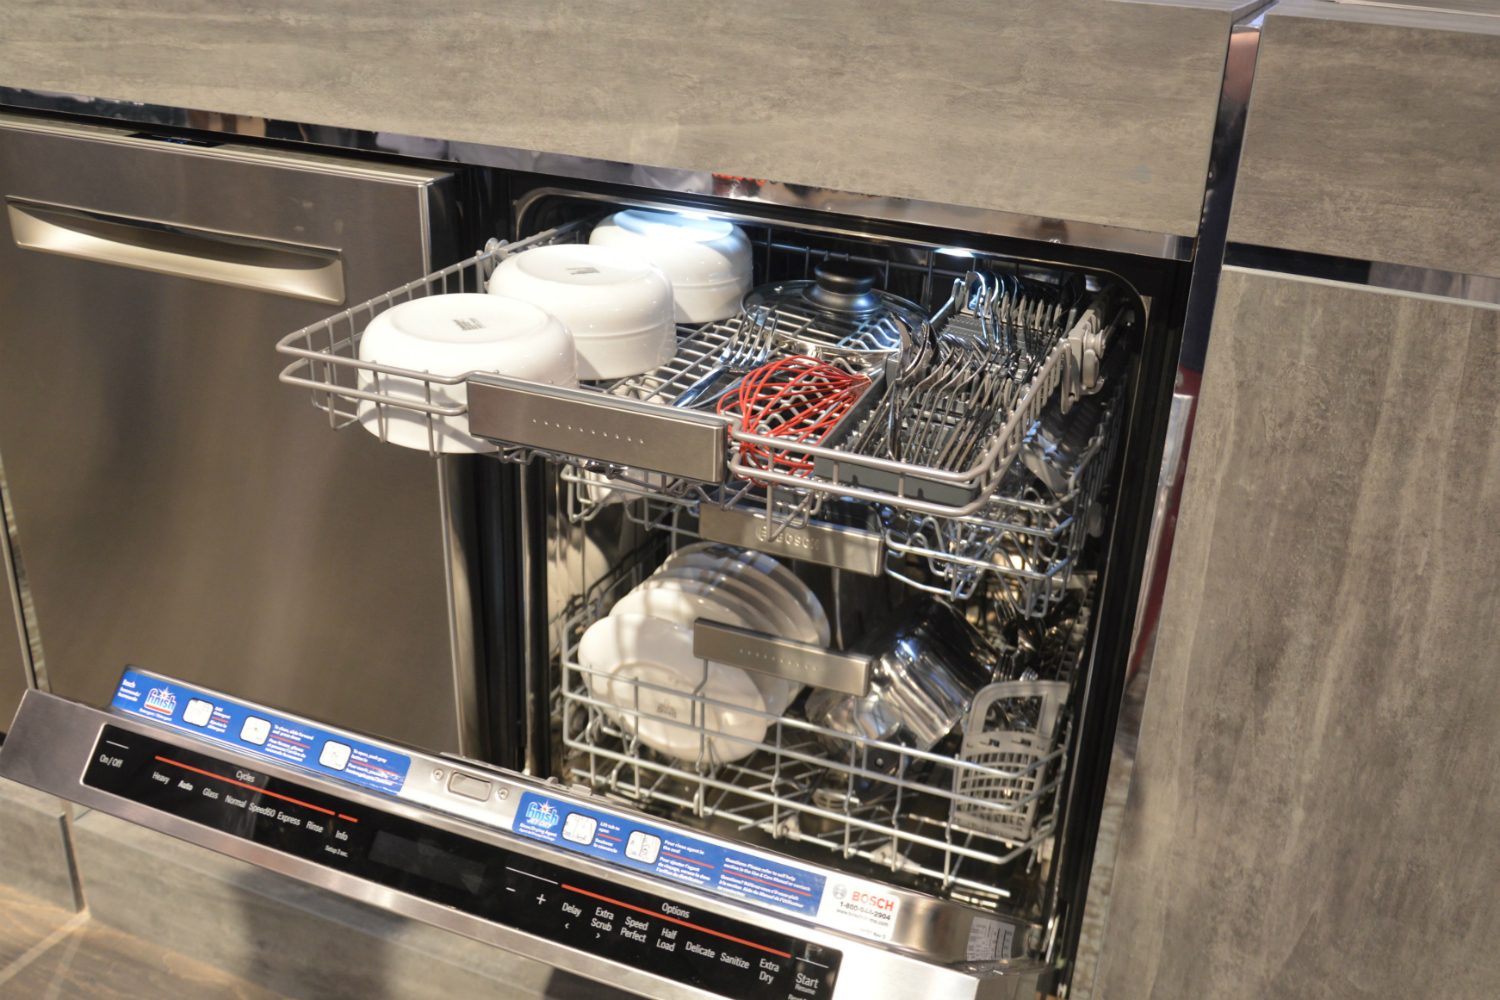 Recall Of More Than 663 000 Dishwashers For Fire Risk